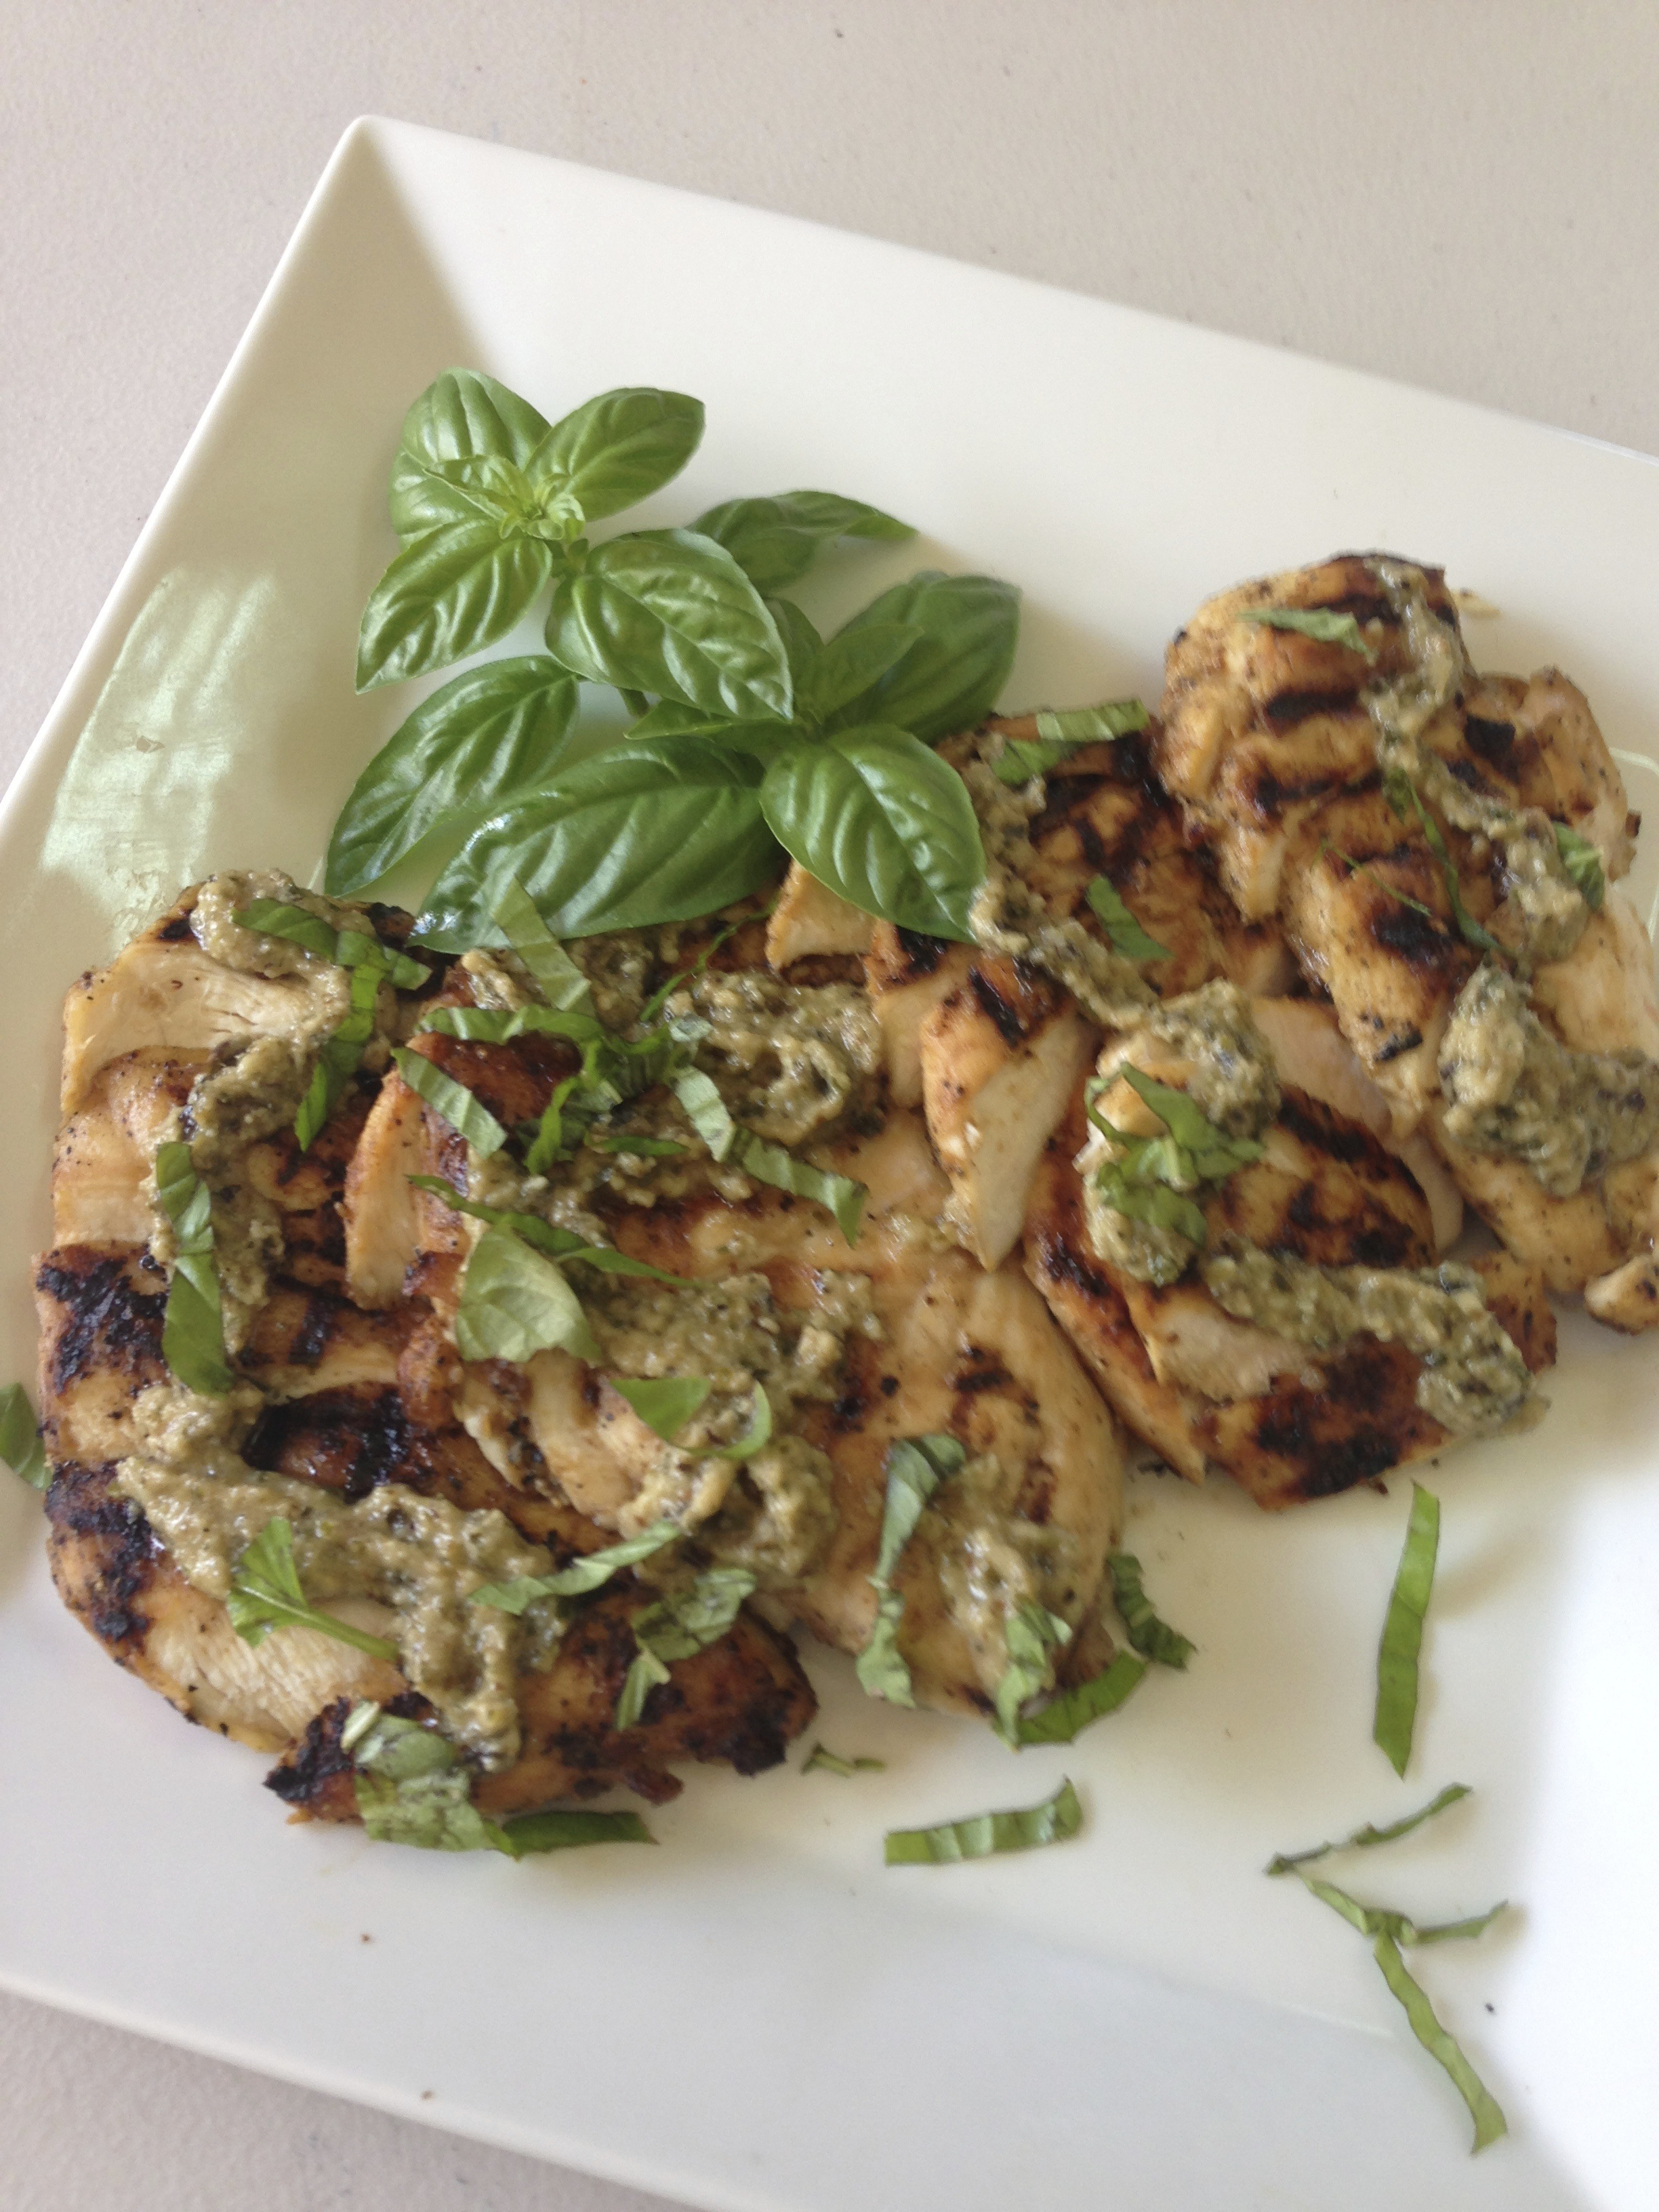 CHICKEN WITH PESTO